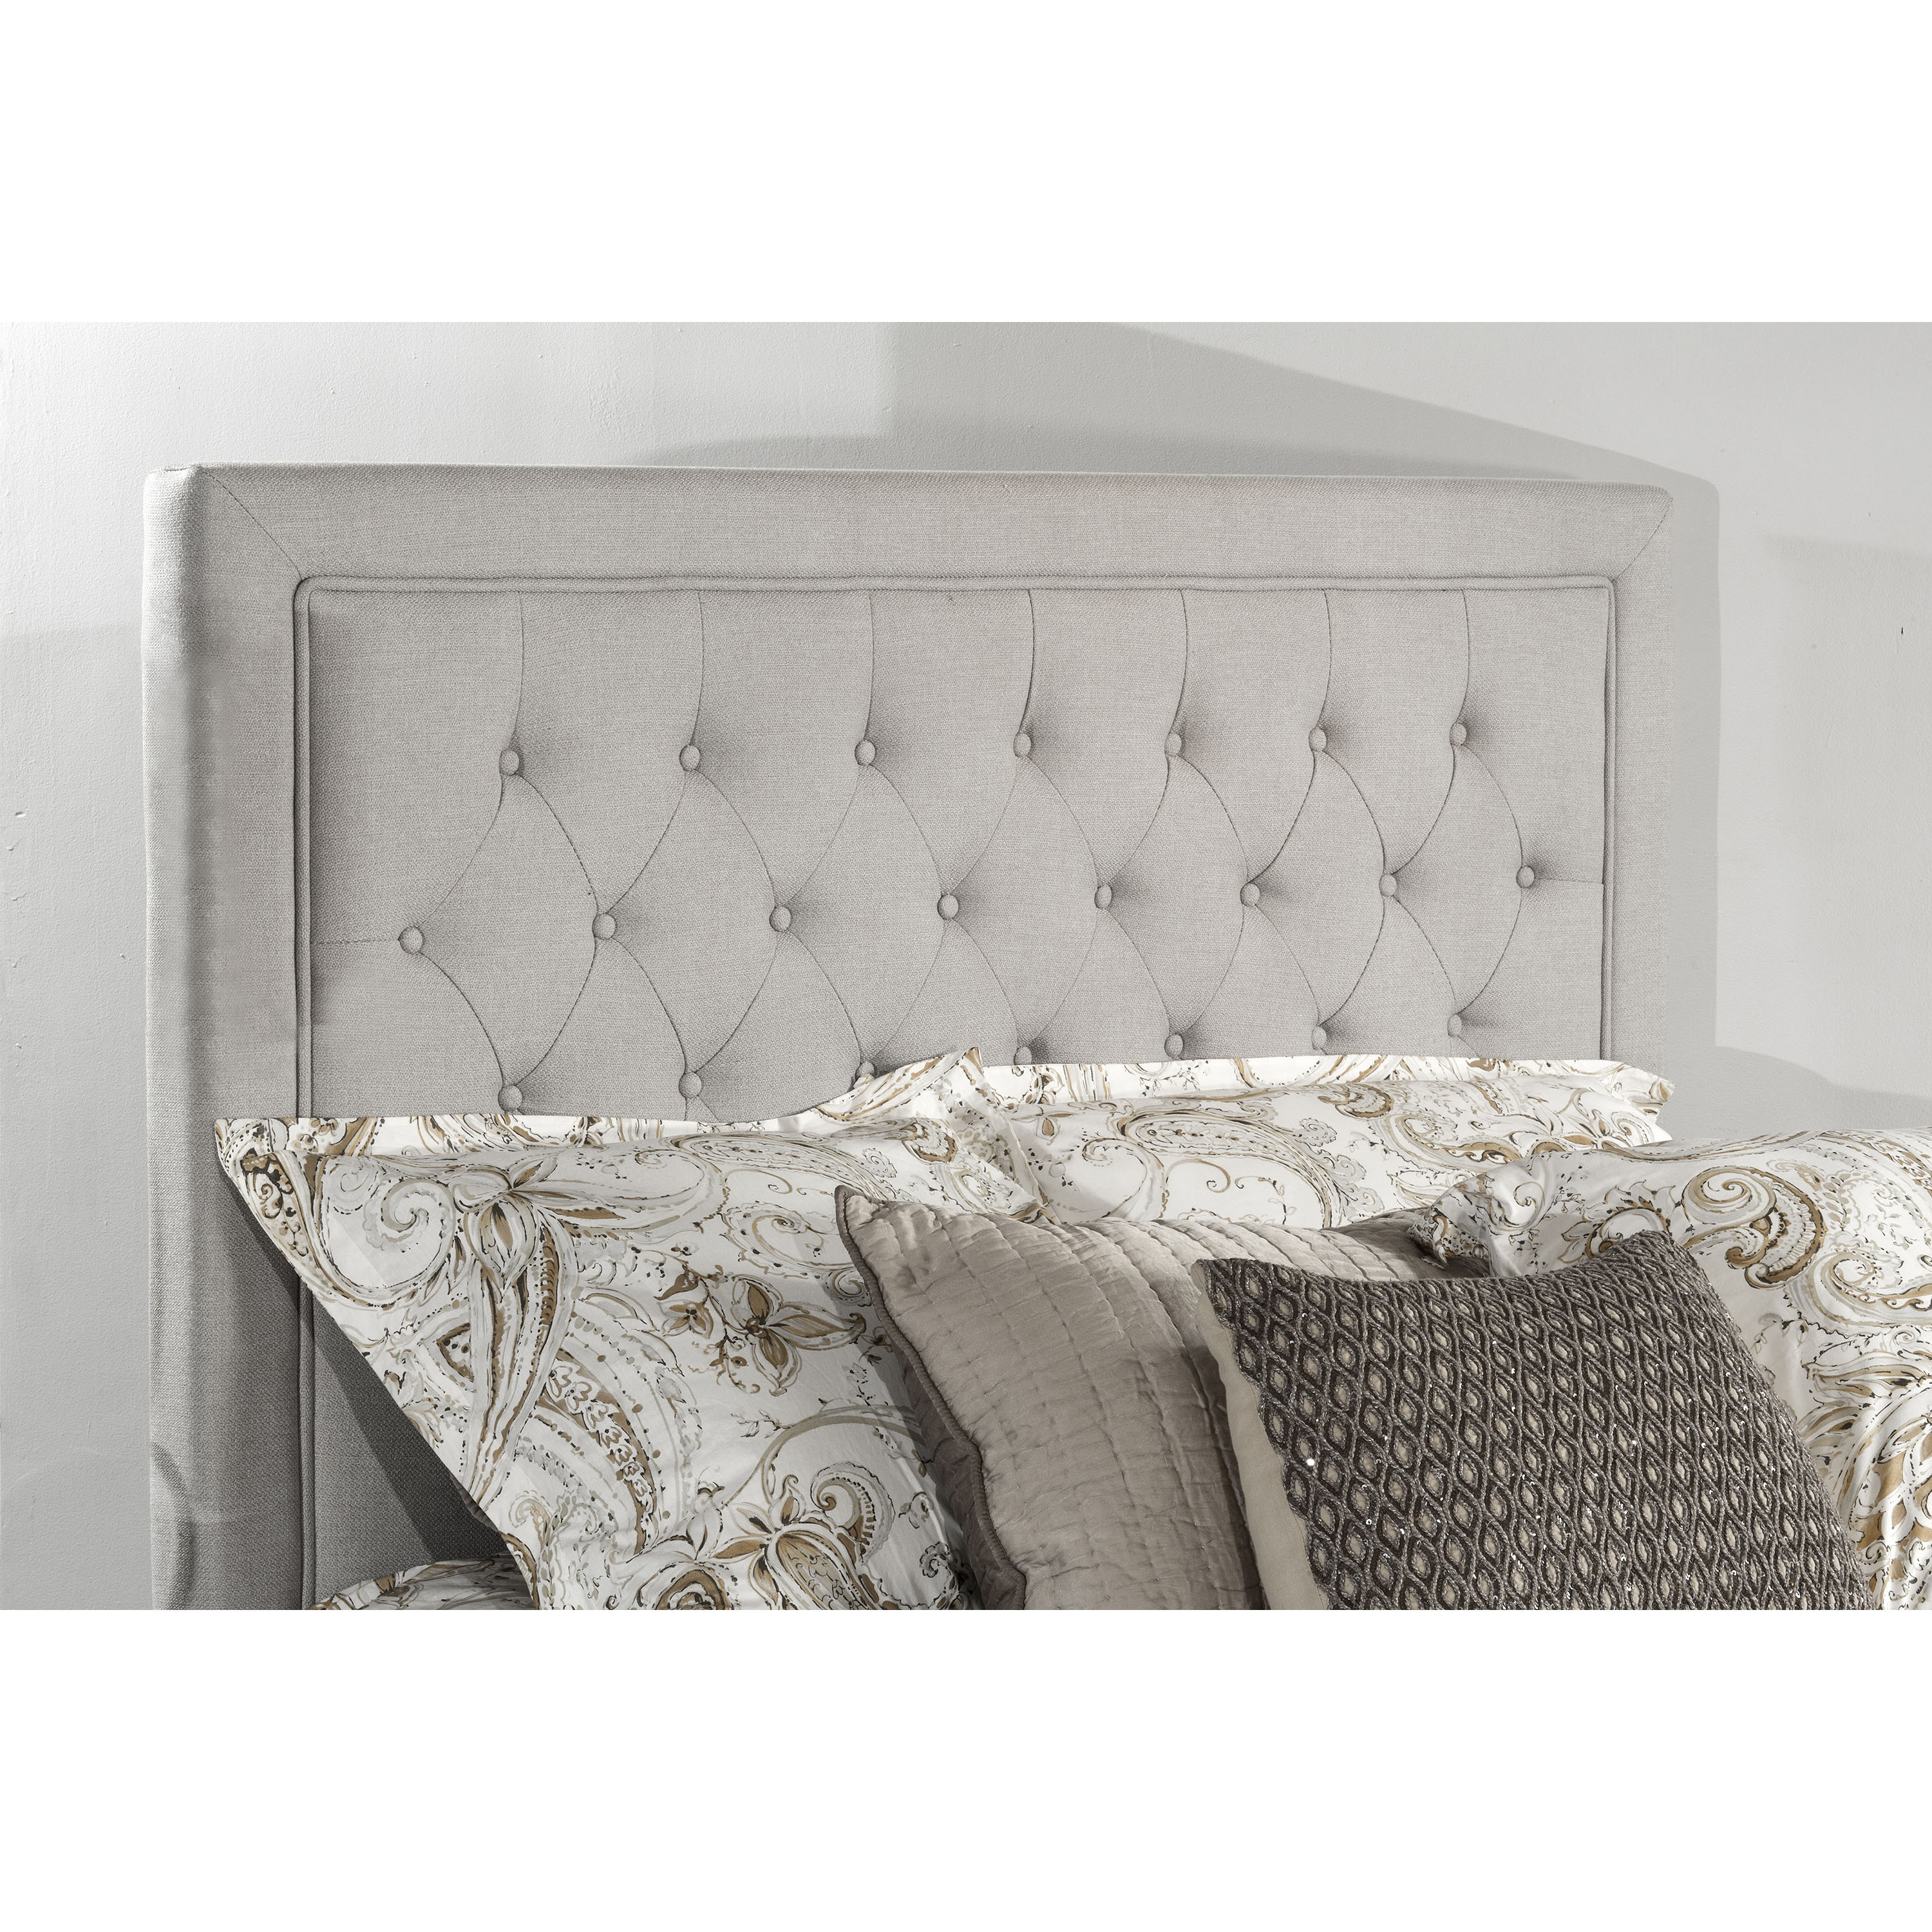 Hillsdale Furniture Kaylie Headboard with Metal Frame, Multiple Sizes